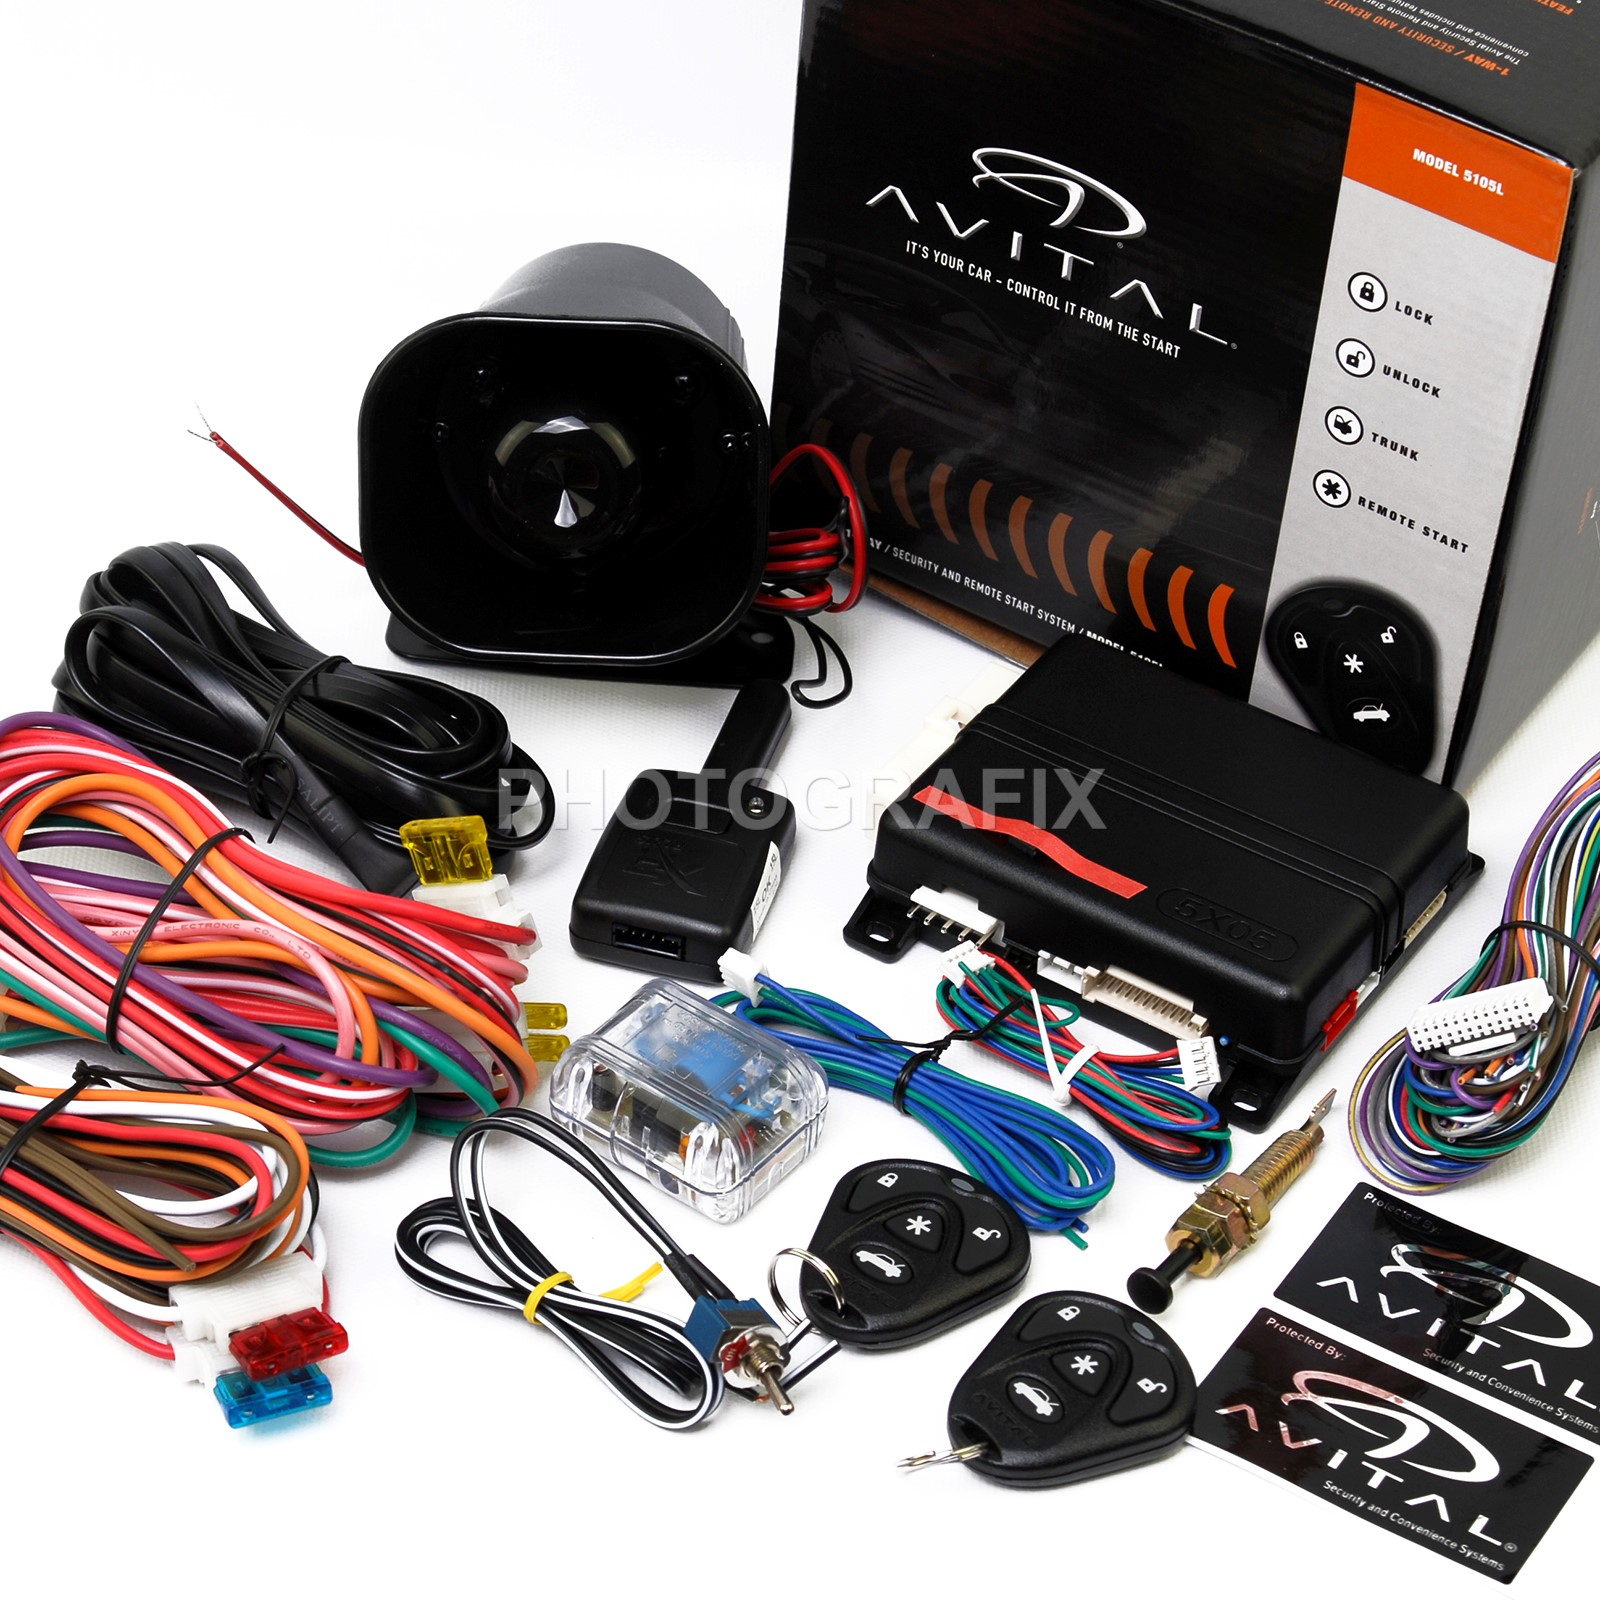 New Avital 5105l 1 Way Car Security Alarm Remote Start System D2d Starter Control Replaces 5103l